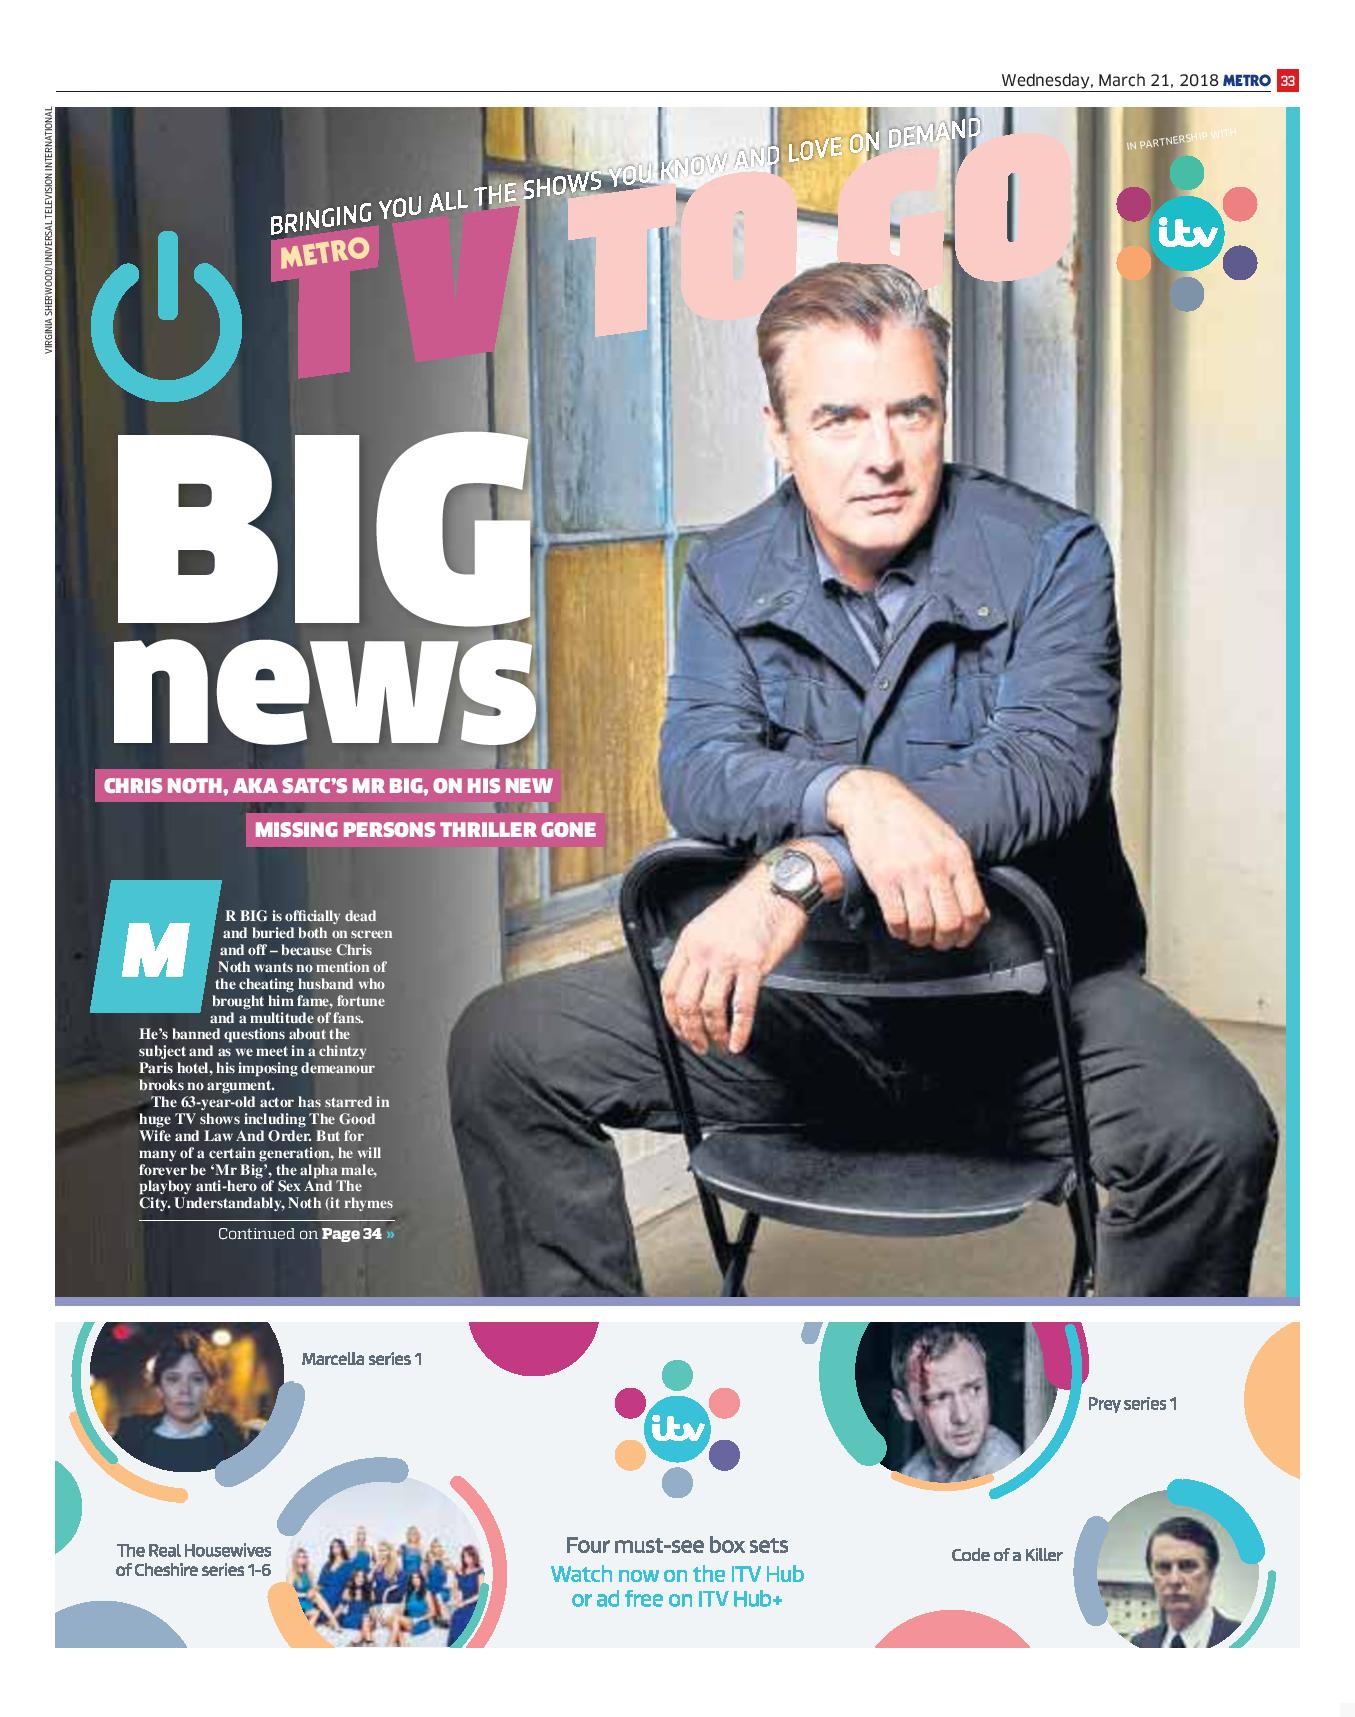 Big News: An Interview With Chris Noth (Metro, 21st Mar 2018)